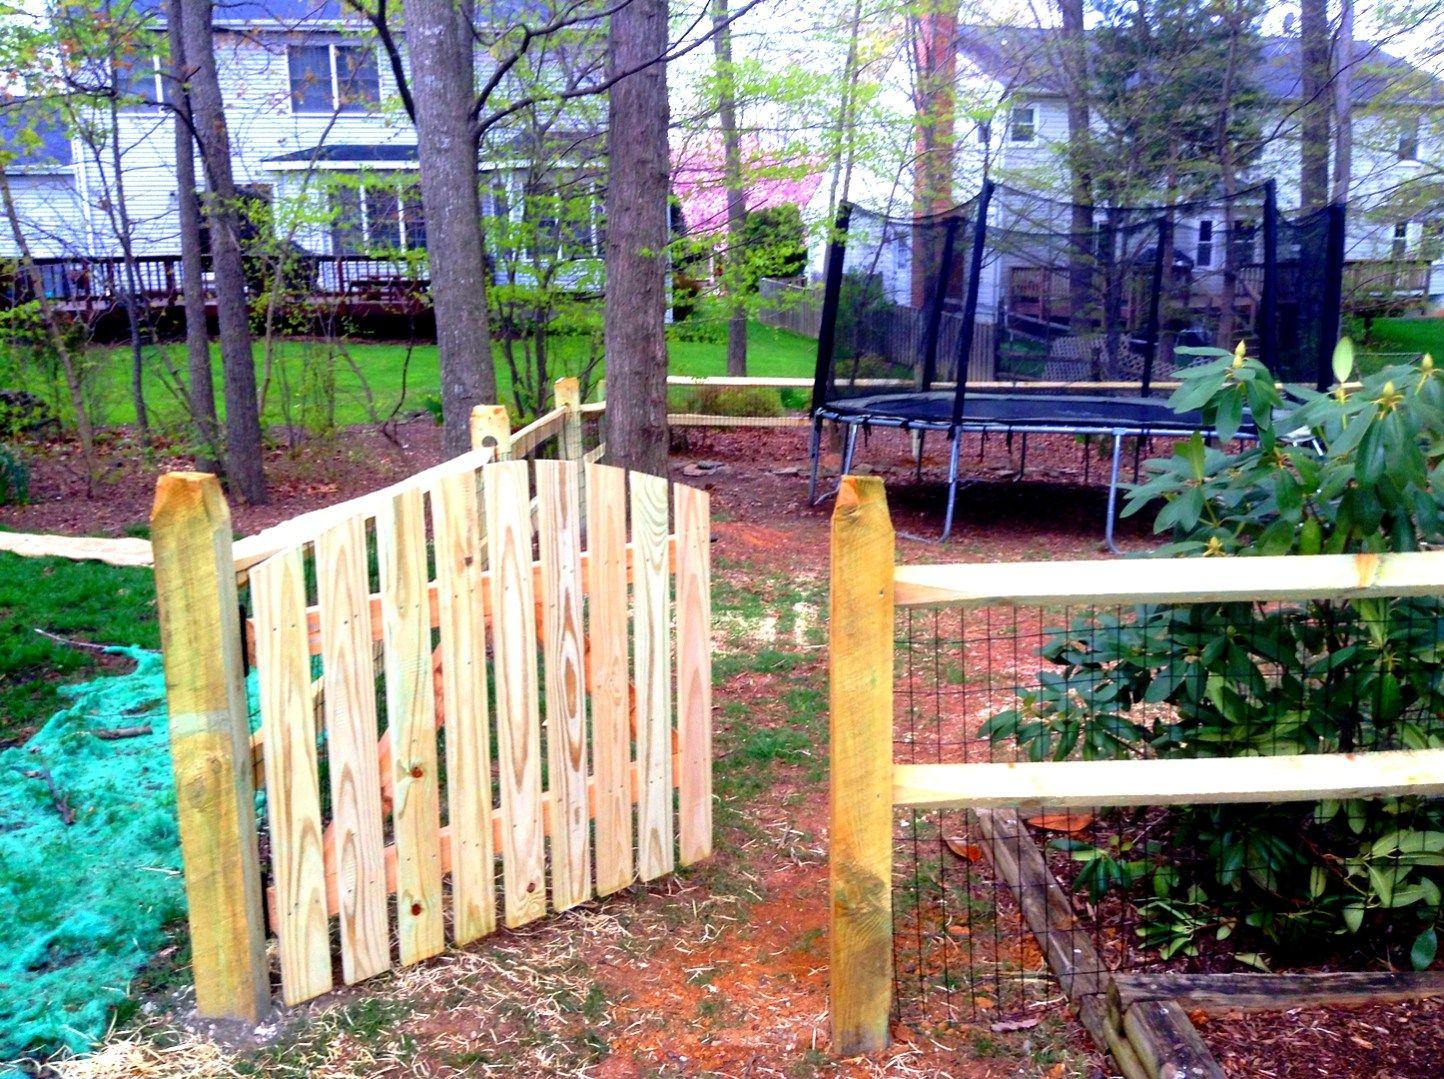 Fence Designs Lions Fence Award Winning Local Co Wood Fence